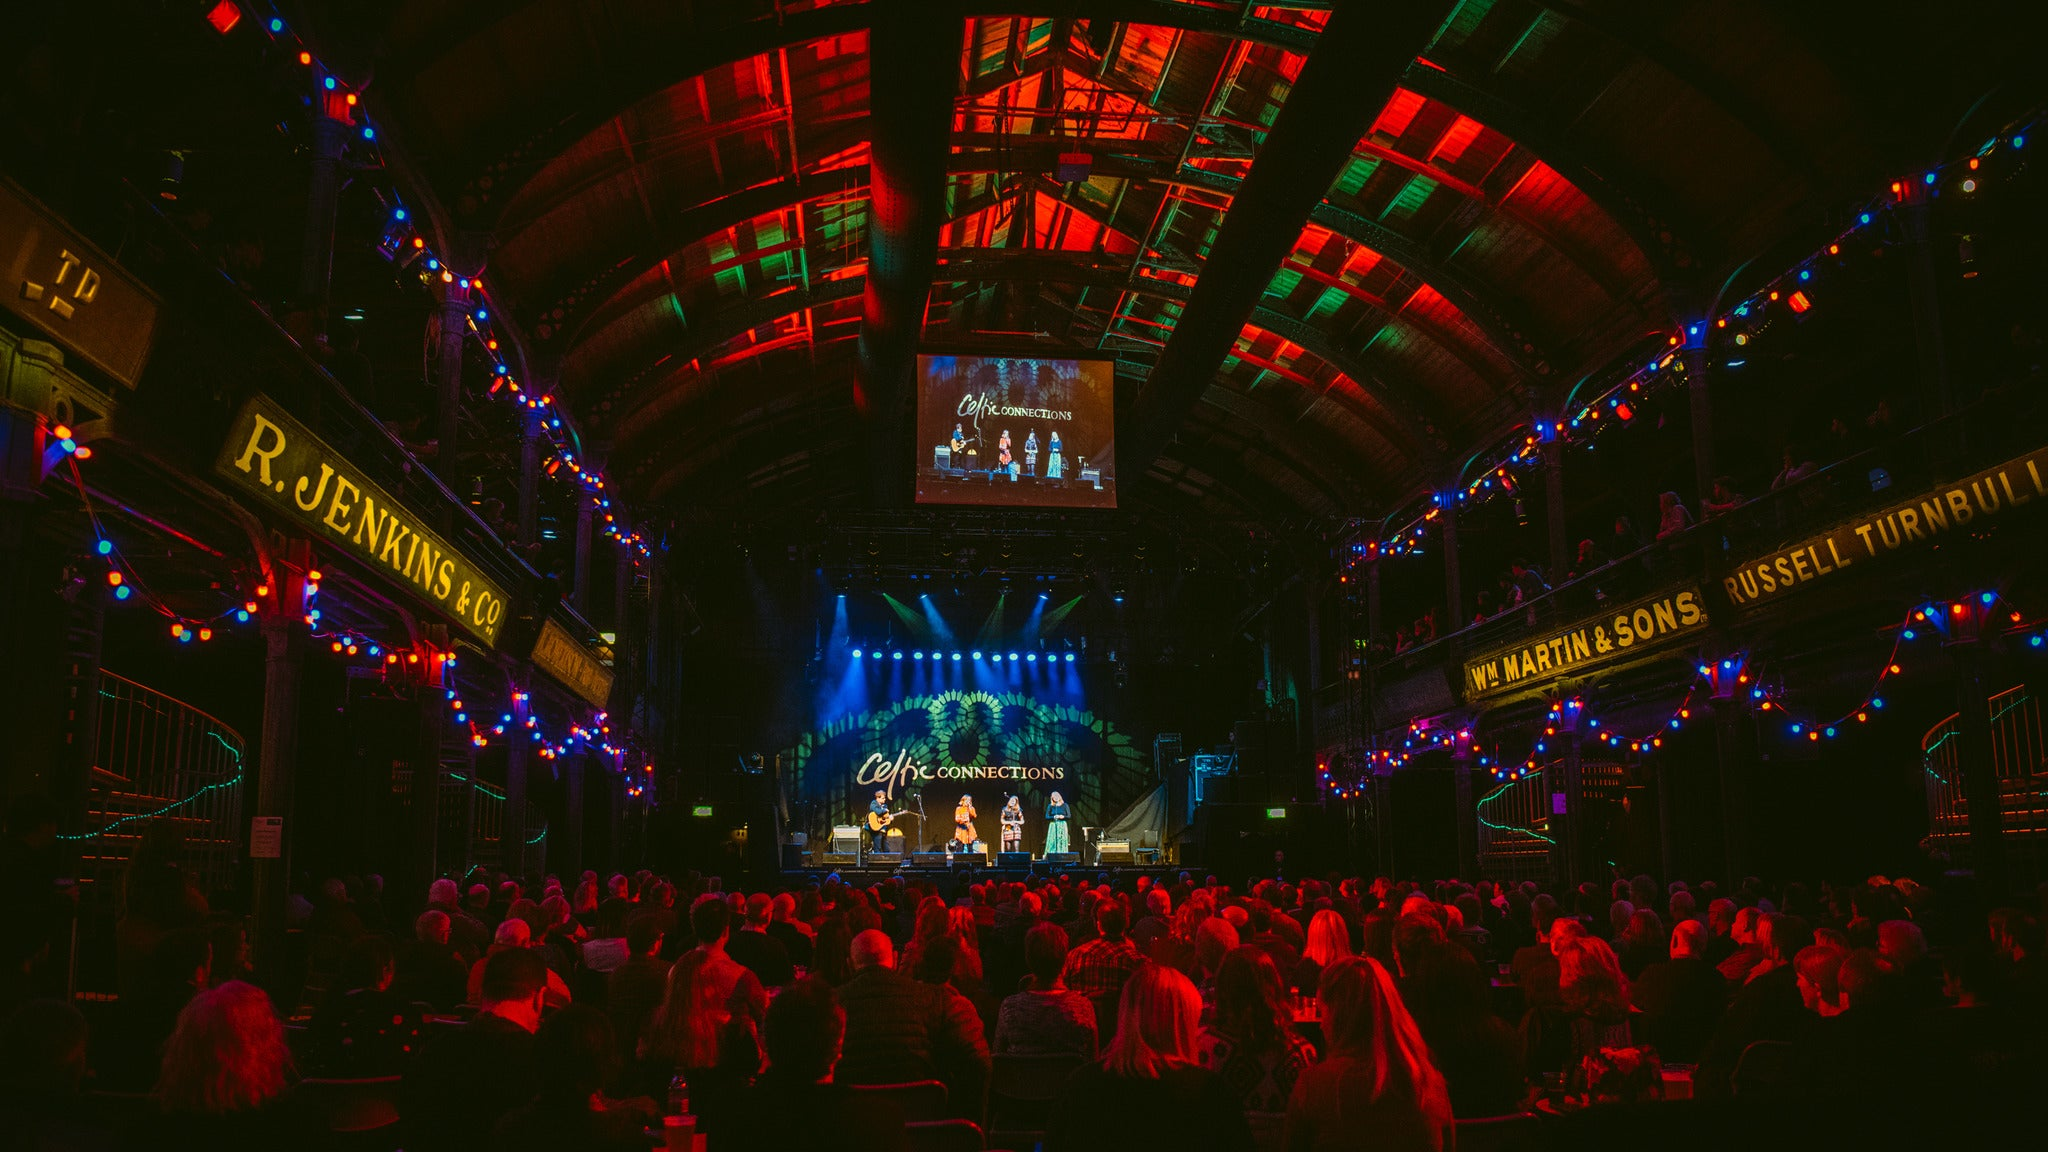 Auld Lang Syne: BBC SSO & Special Guests Seating Plans